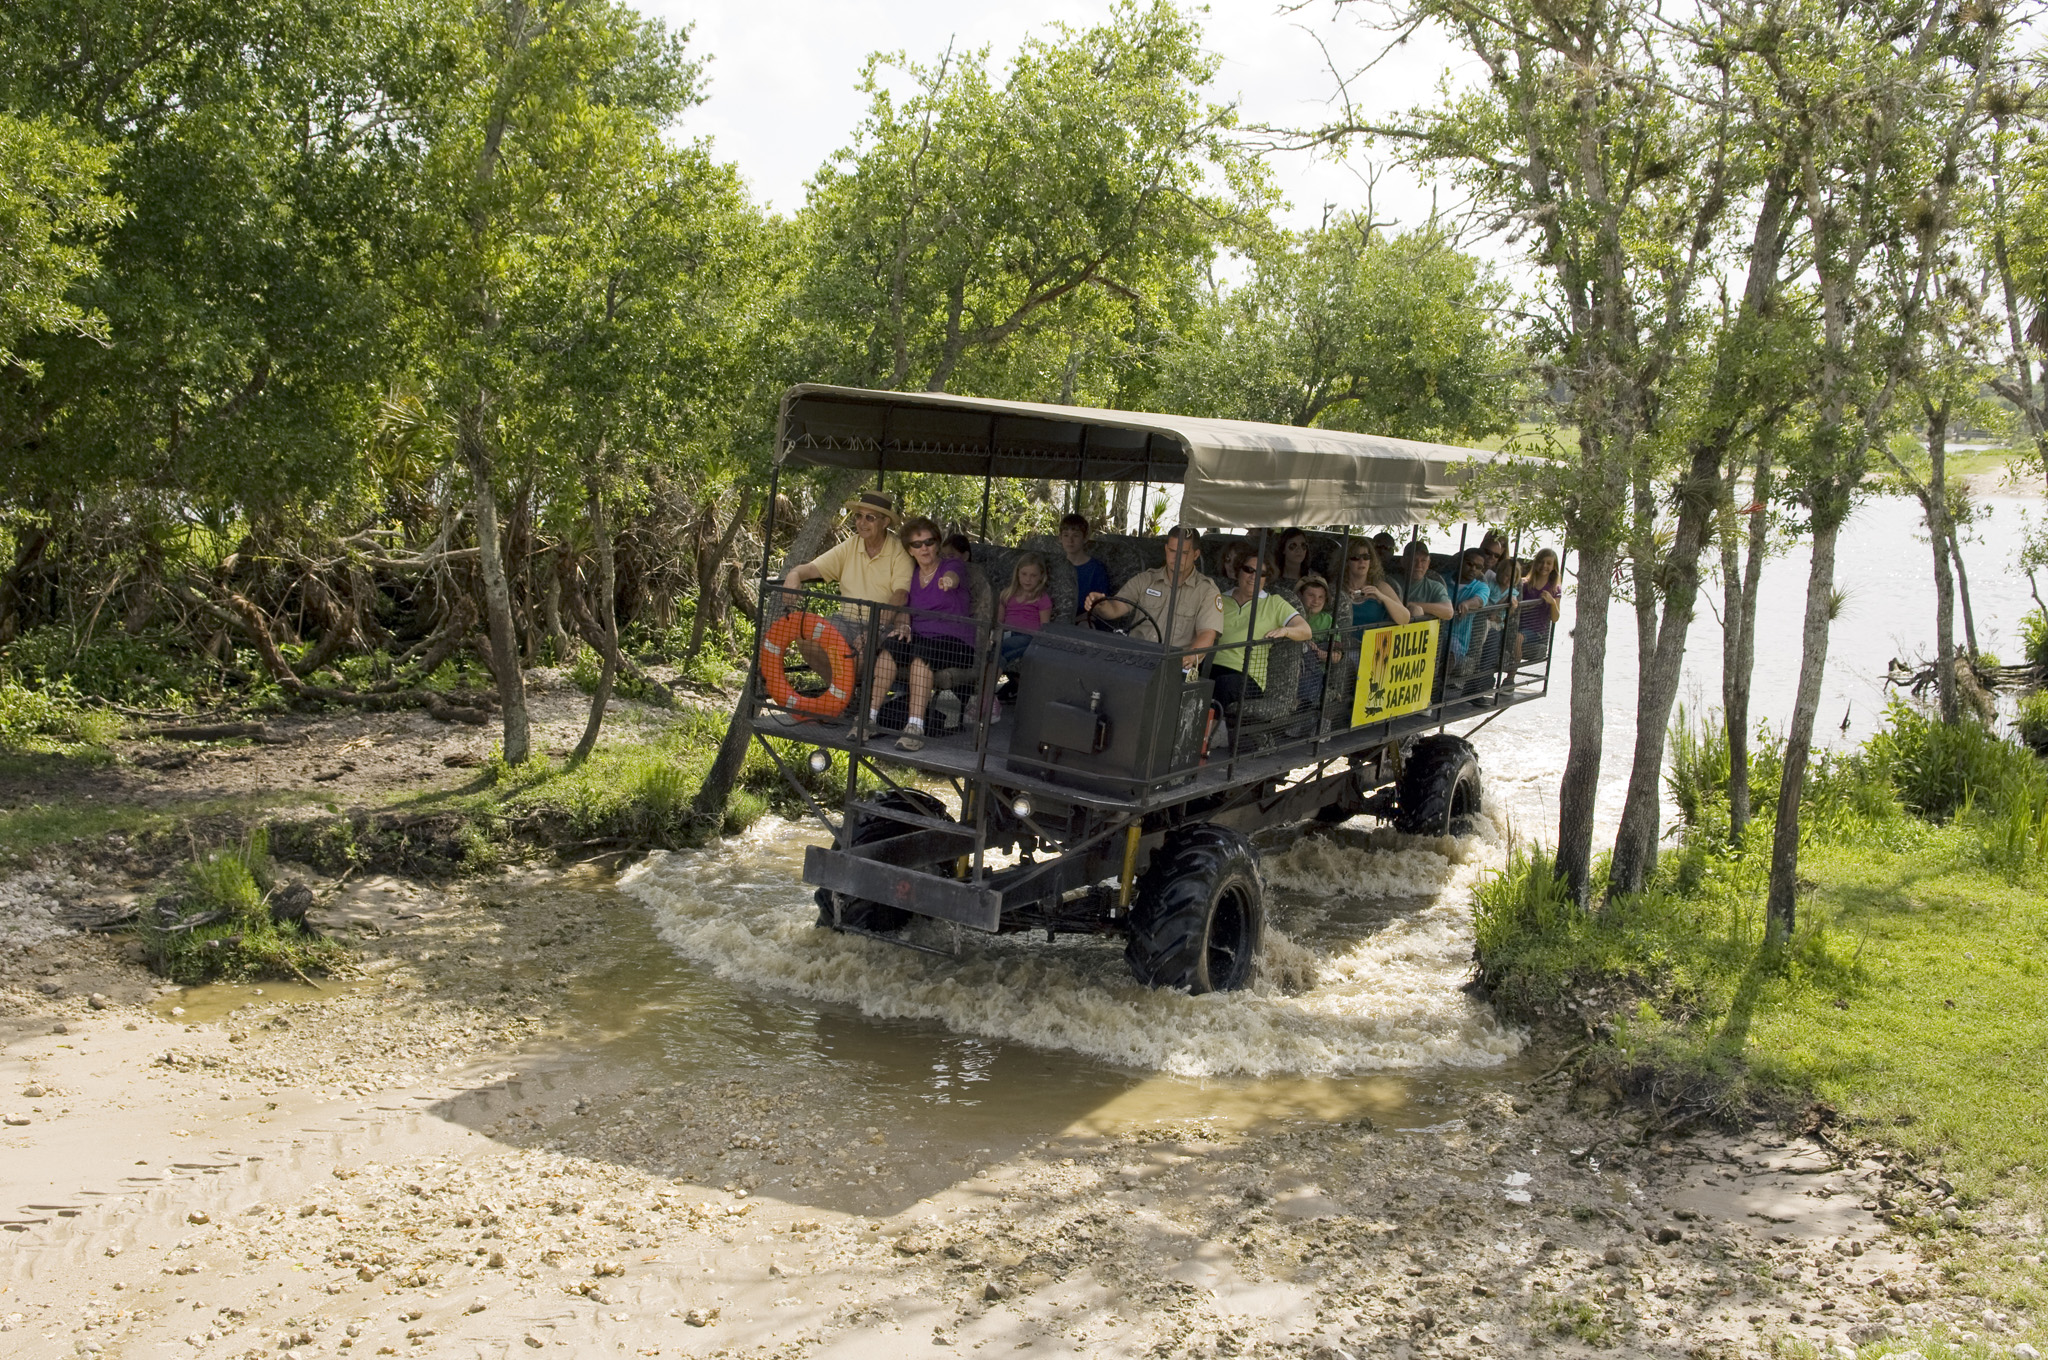 Swamp_Buggy_Eco_Tour